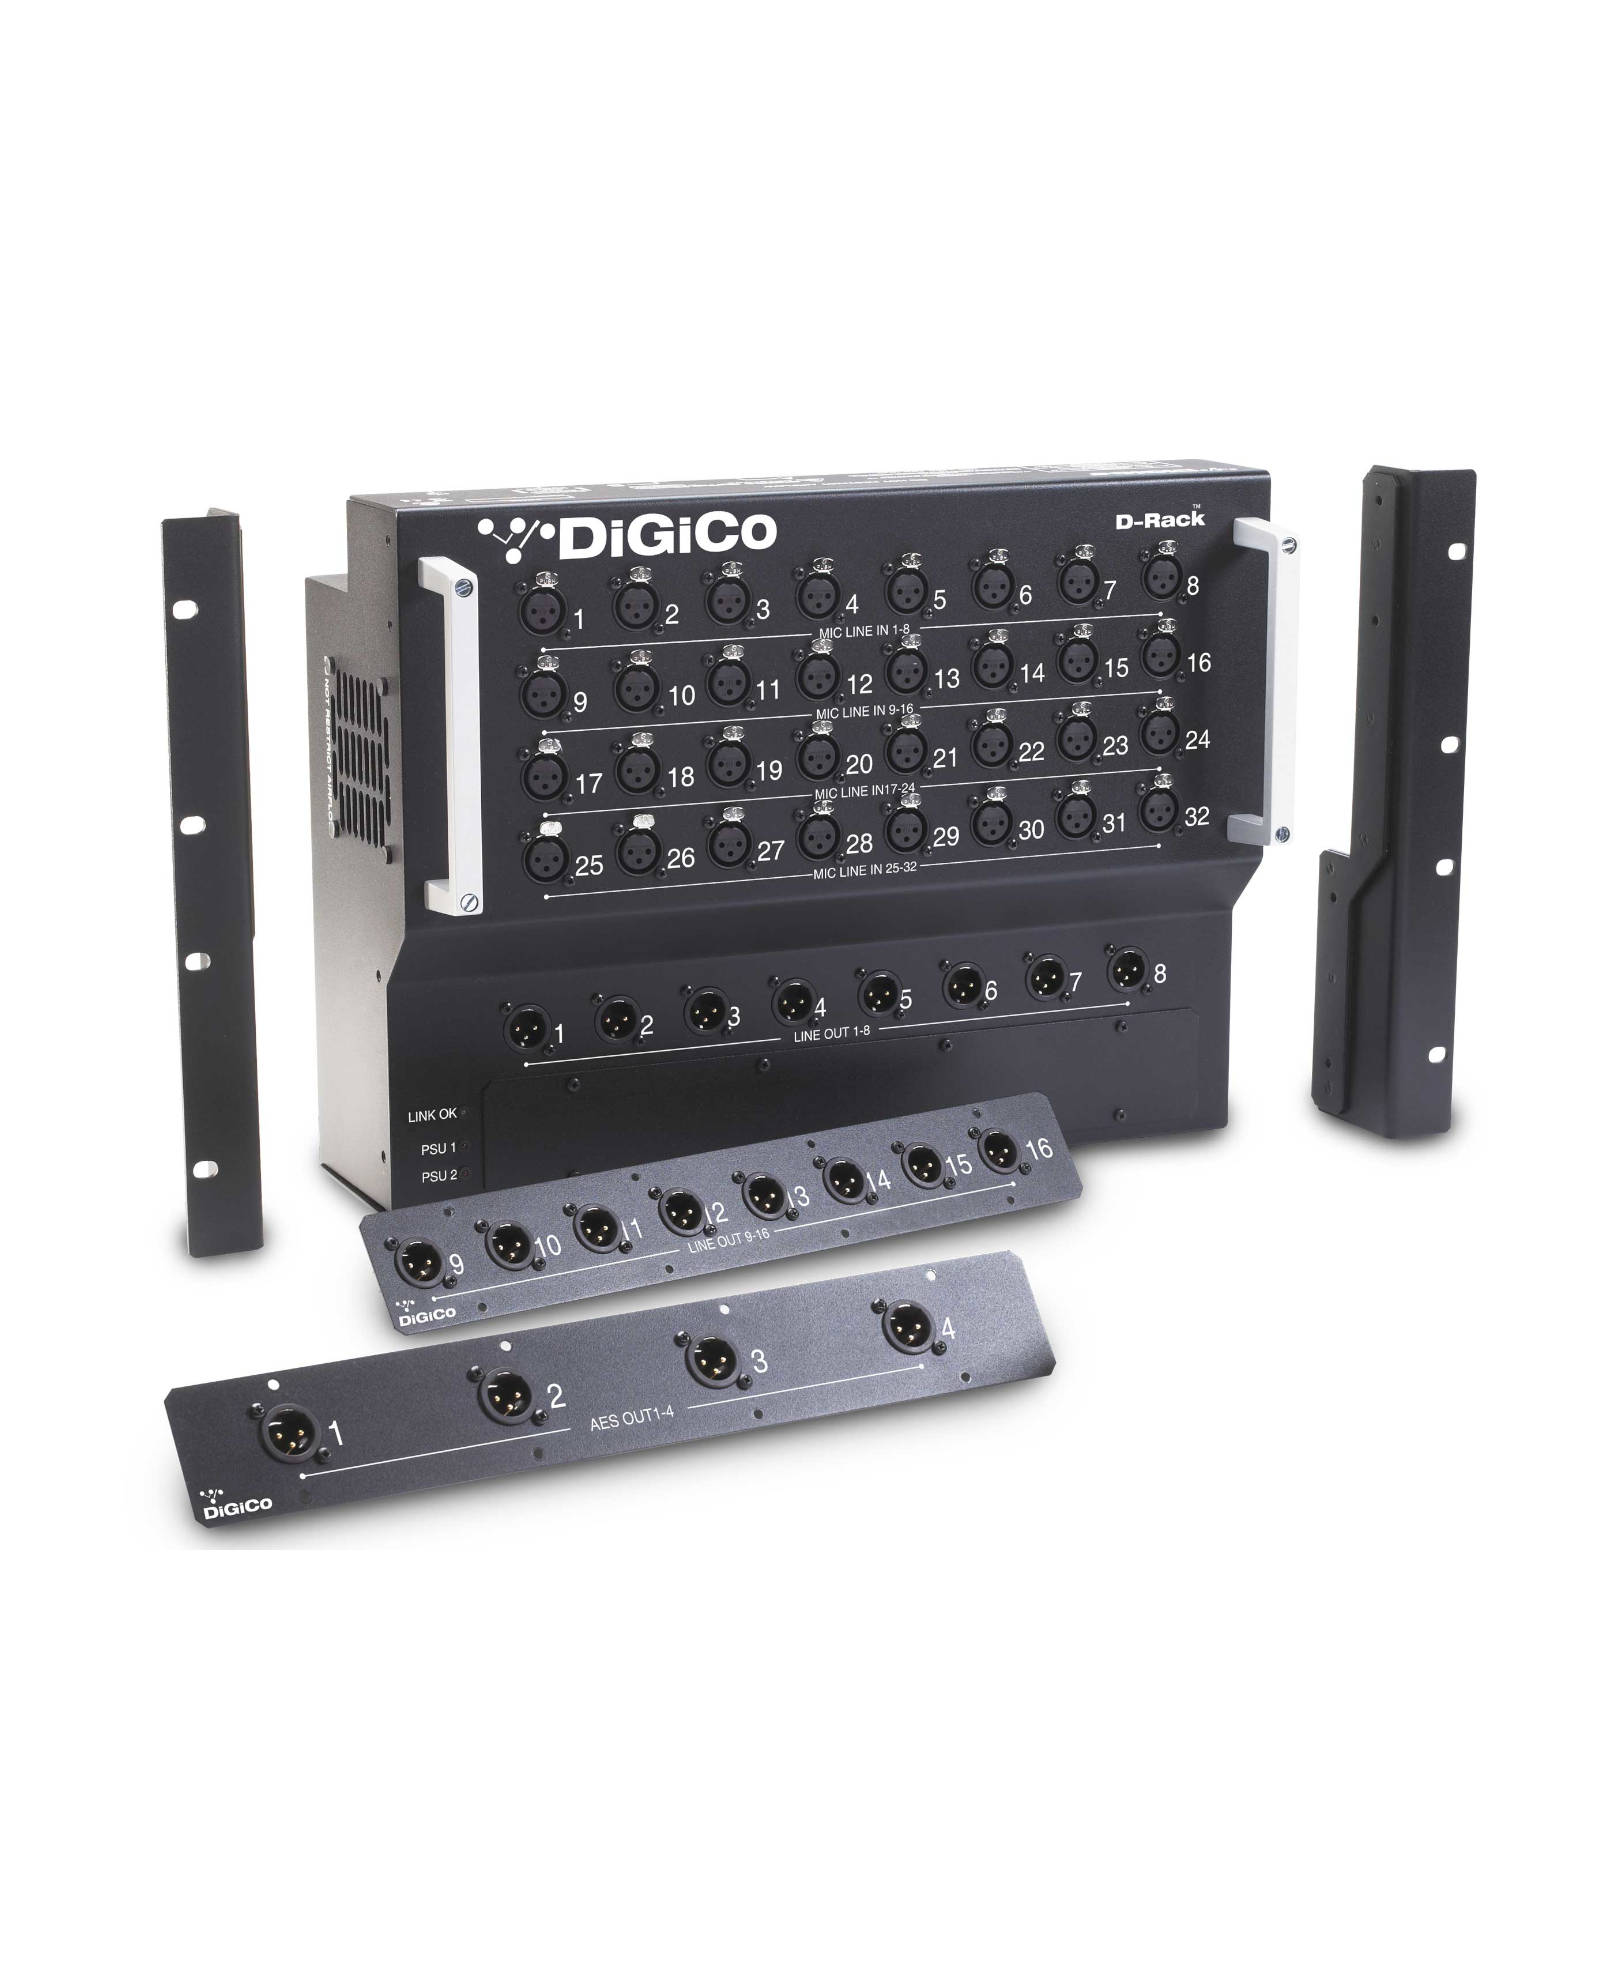 Digico D Rack